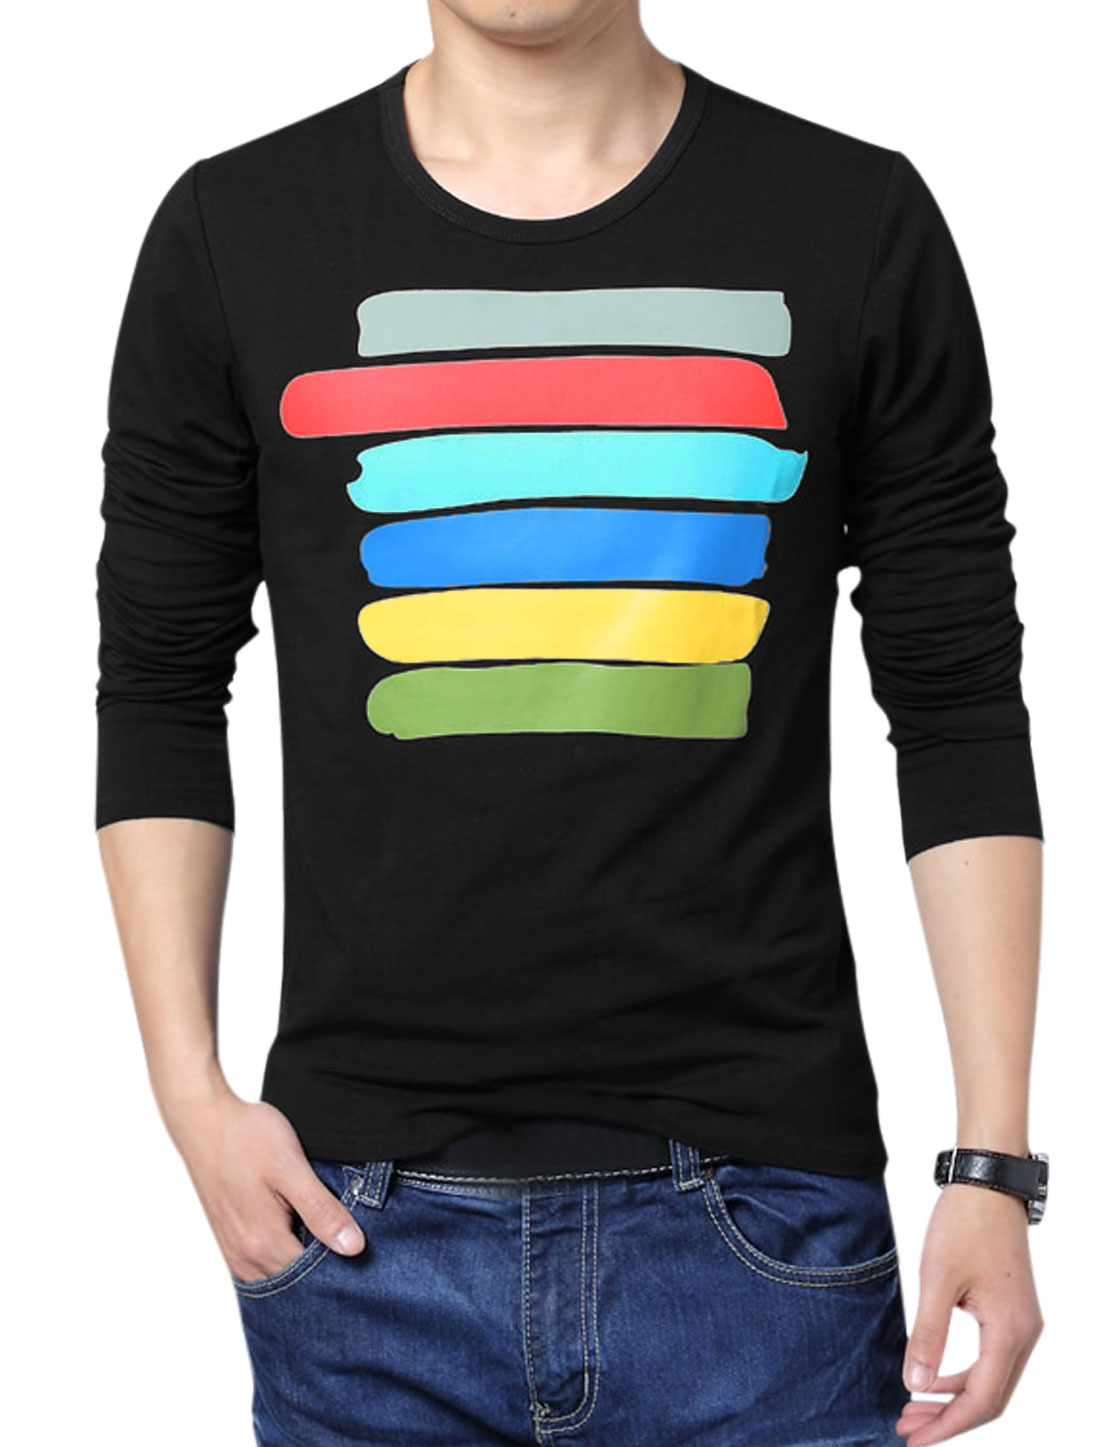 Men Long Sleeve Colorful Stripes Regular Fit Basic T-Shirt Black M